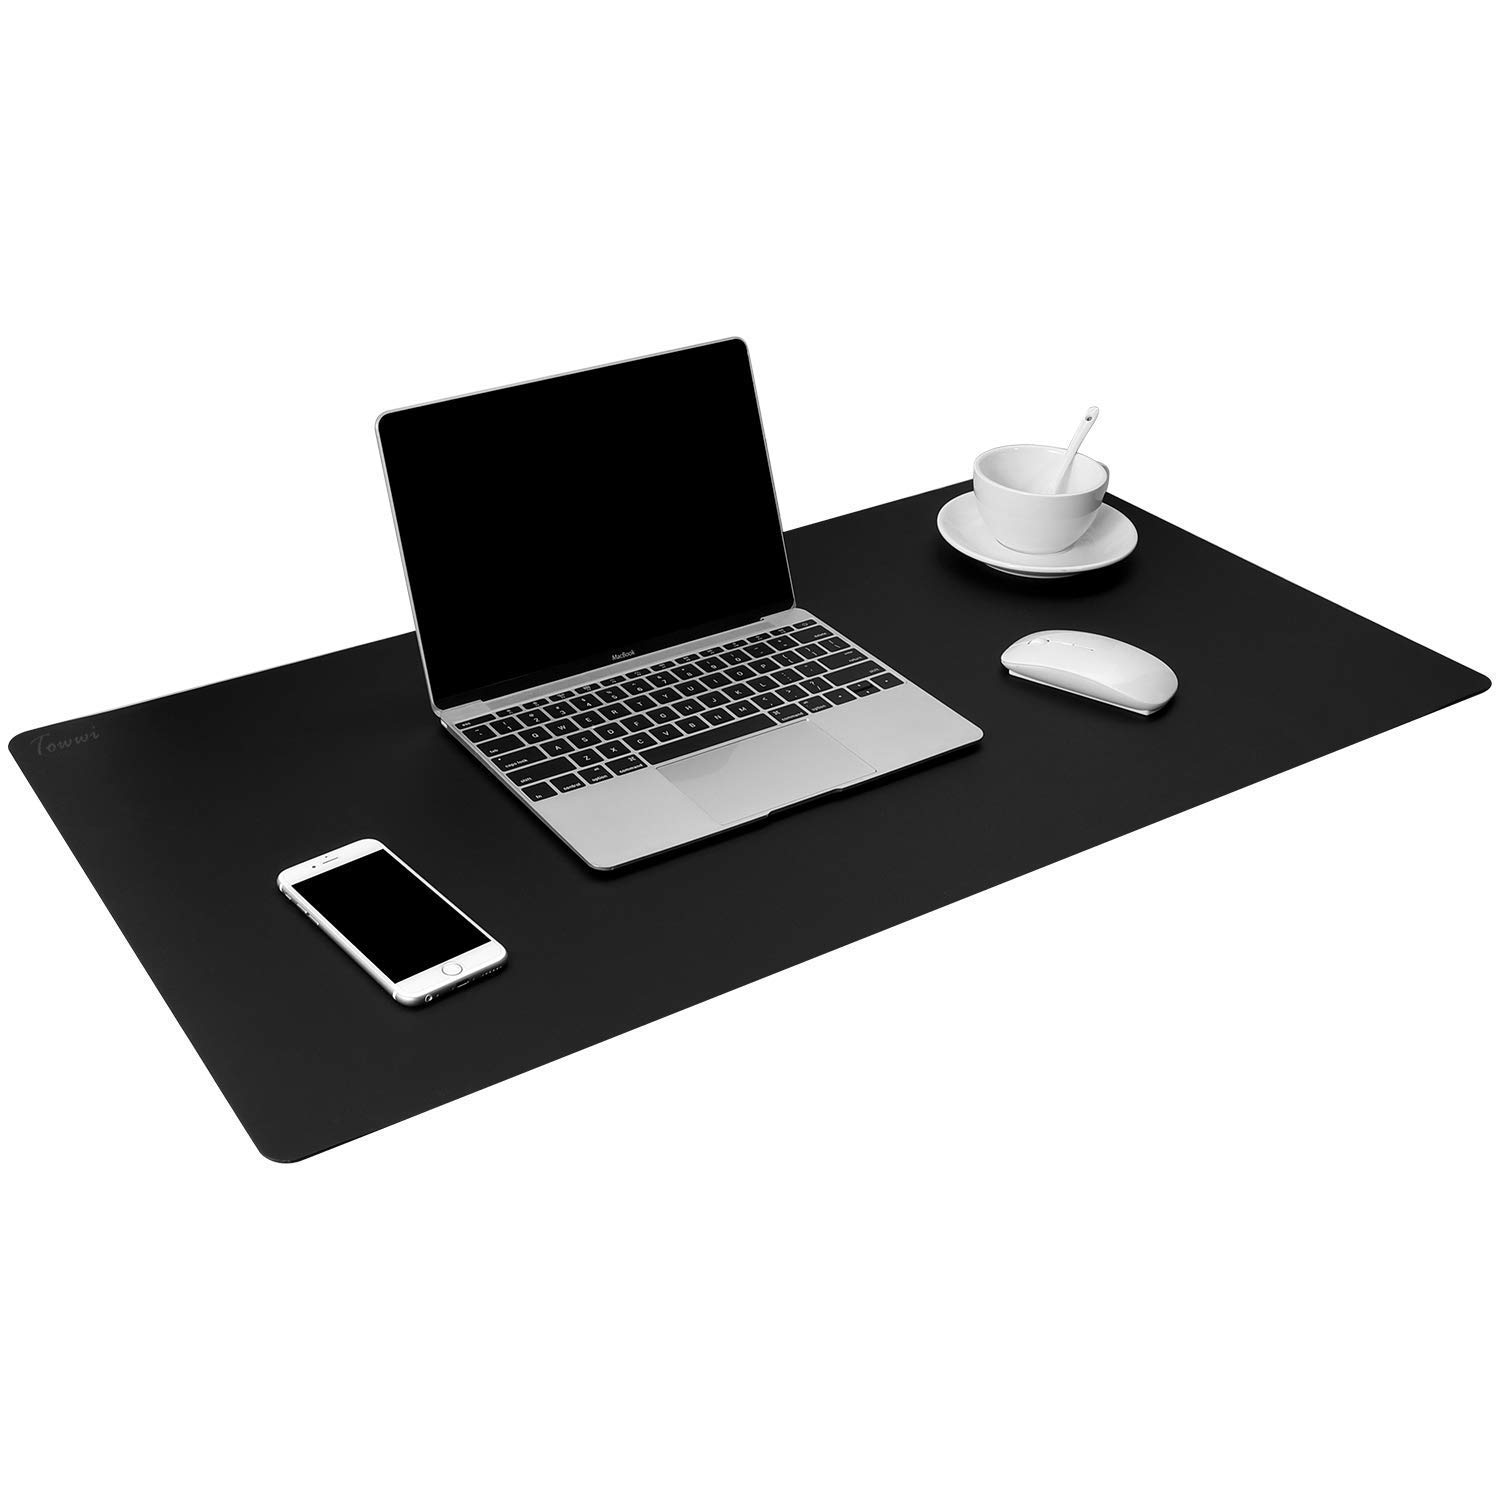 "TOWWI Desk Pad, Leather Mouse Pad, 32""x16"" Laptop Desk Mat Blotter, Waterproof Writing Pad Mouse pad, Desk Accessories Office Decor"